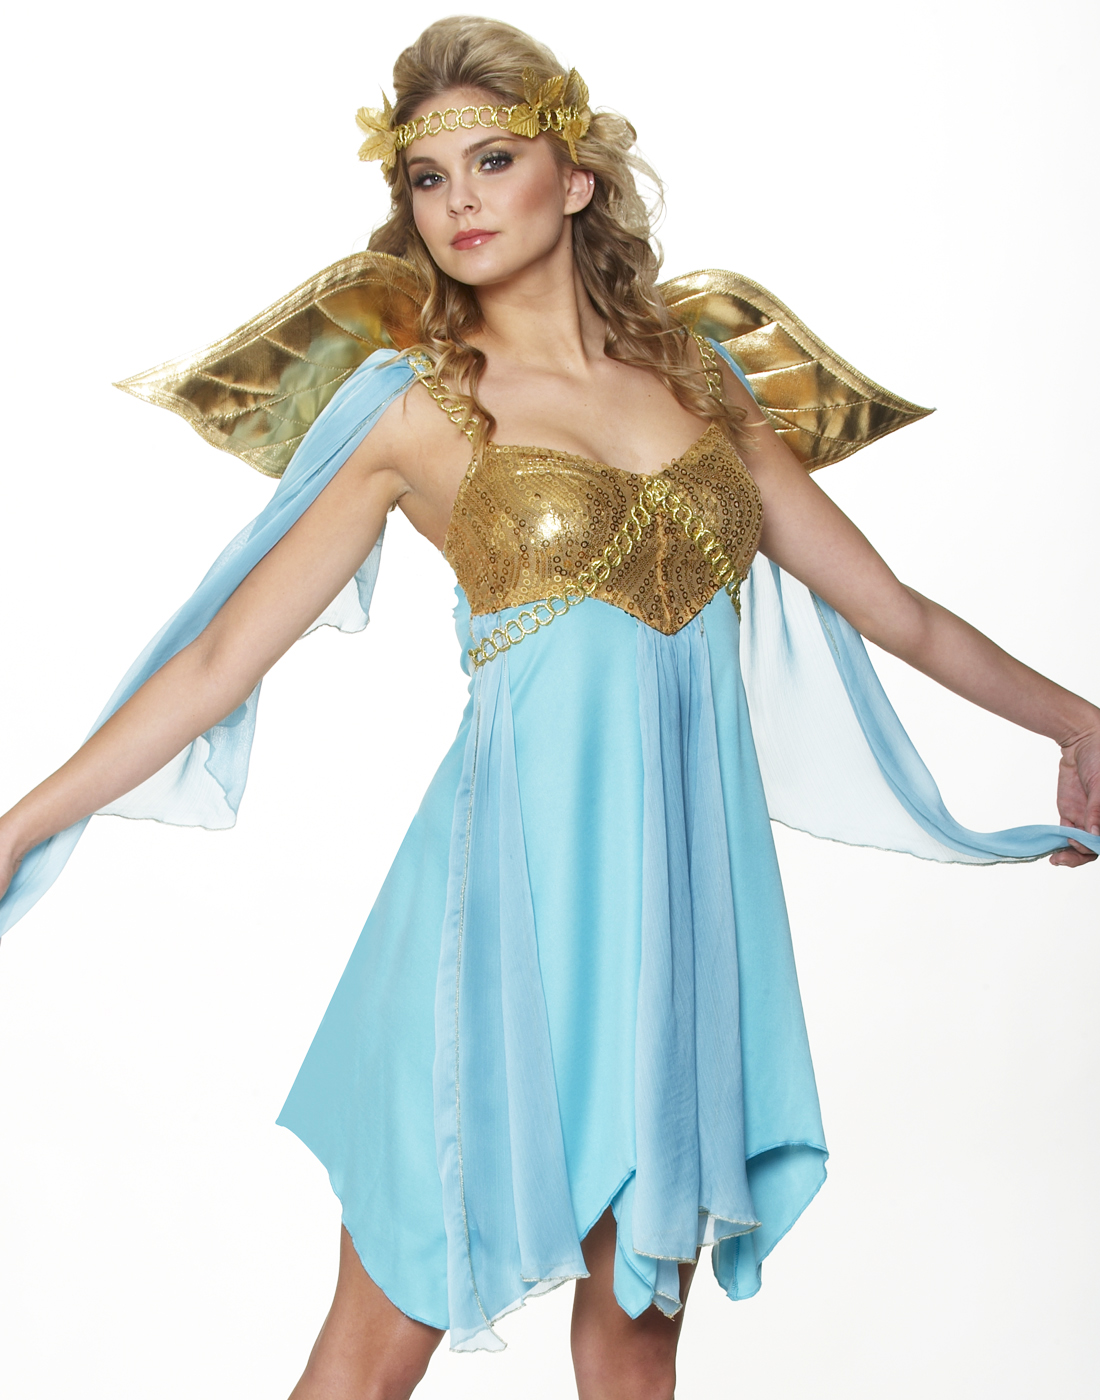 1e07753cd Details about Athena Roman Greek Goddess Toga Princess Fancy Womens  Halloween Costume L